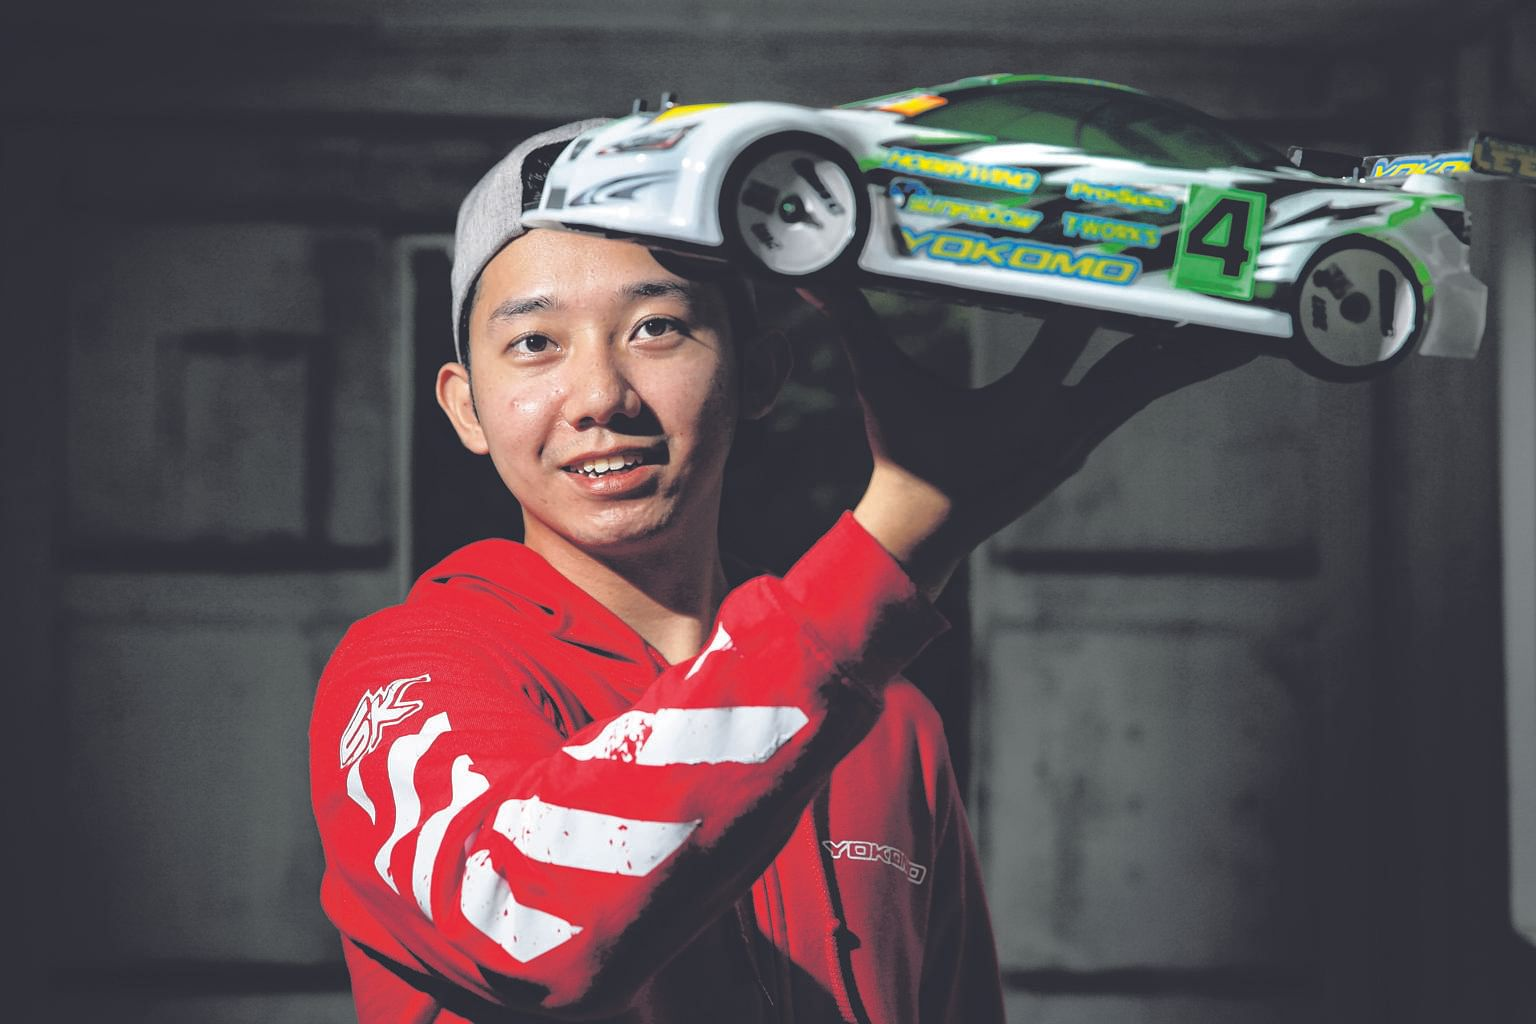 Mr Lee's accreditation and medal have pride of place on the 25-year-old's noticeboard above his work desk. He took ninth place in last year's Ifmar 1/10 Touring Car World Championships held in Beijing. Ifmar, or the International Federation of Model